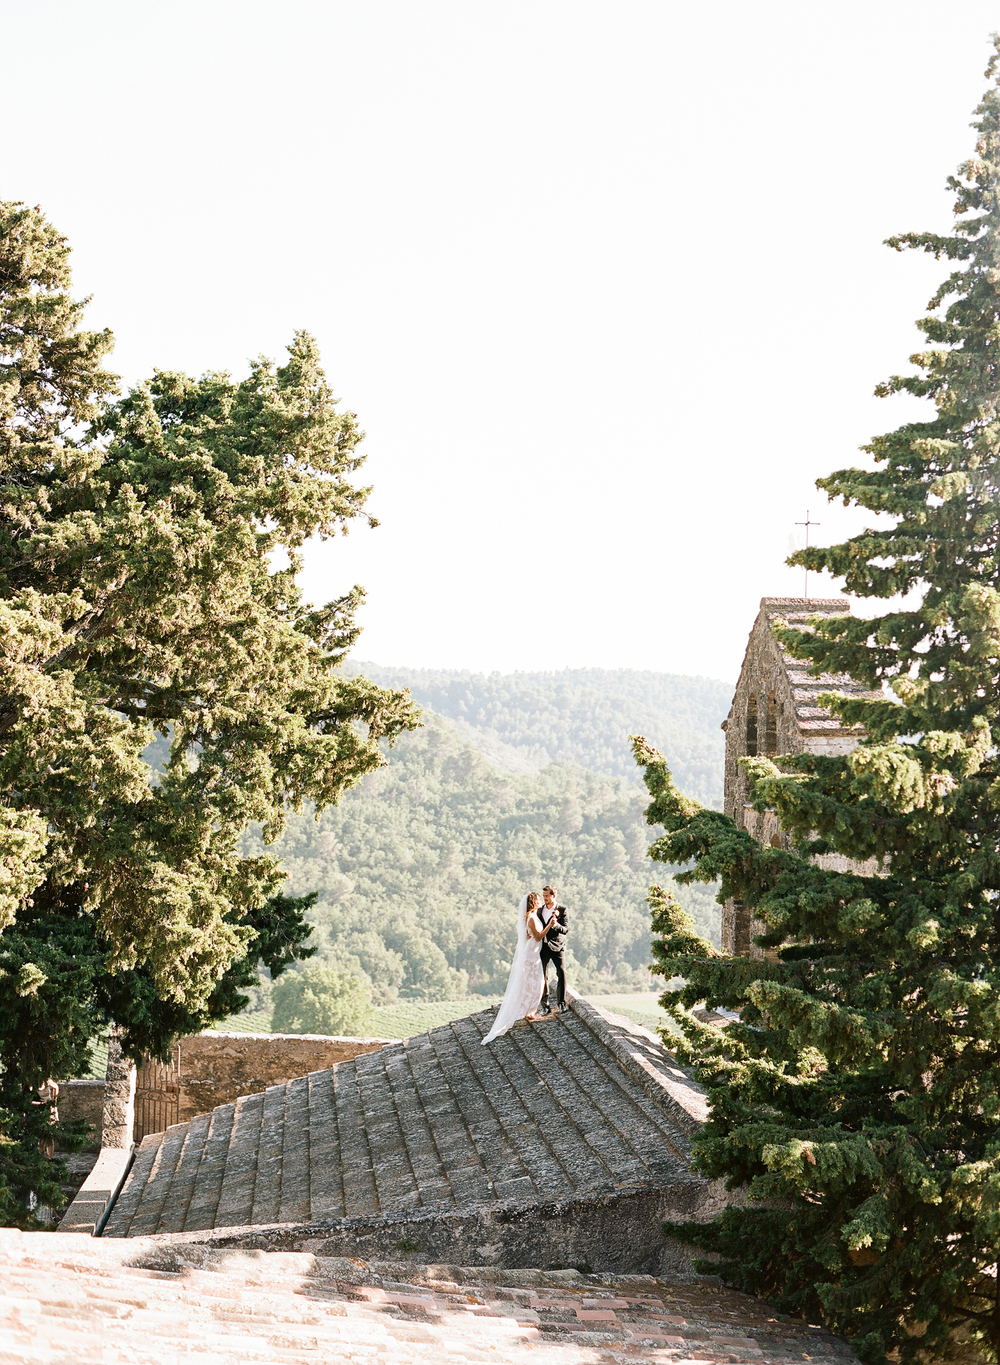 The bride and groom embrace on a church rooftop in a rustic Provençal village during the sunset; photo by Sylvie Gil